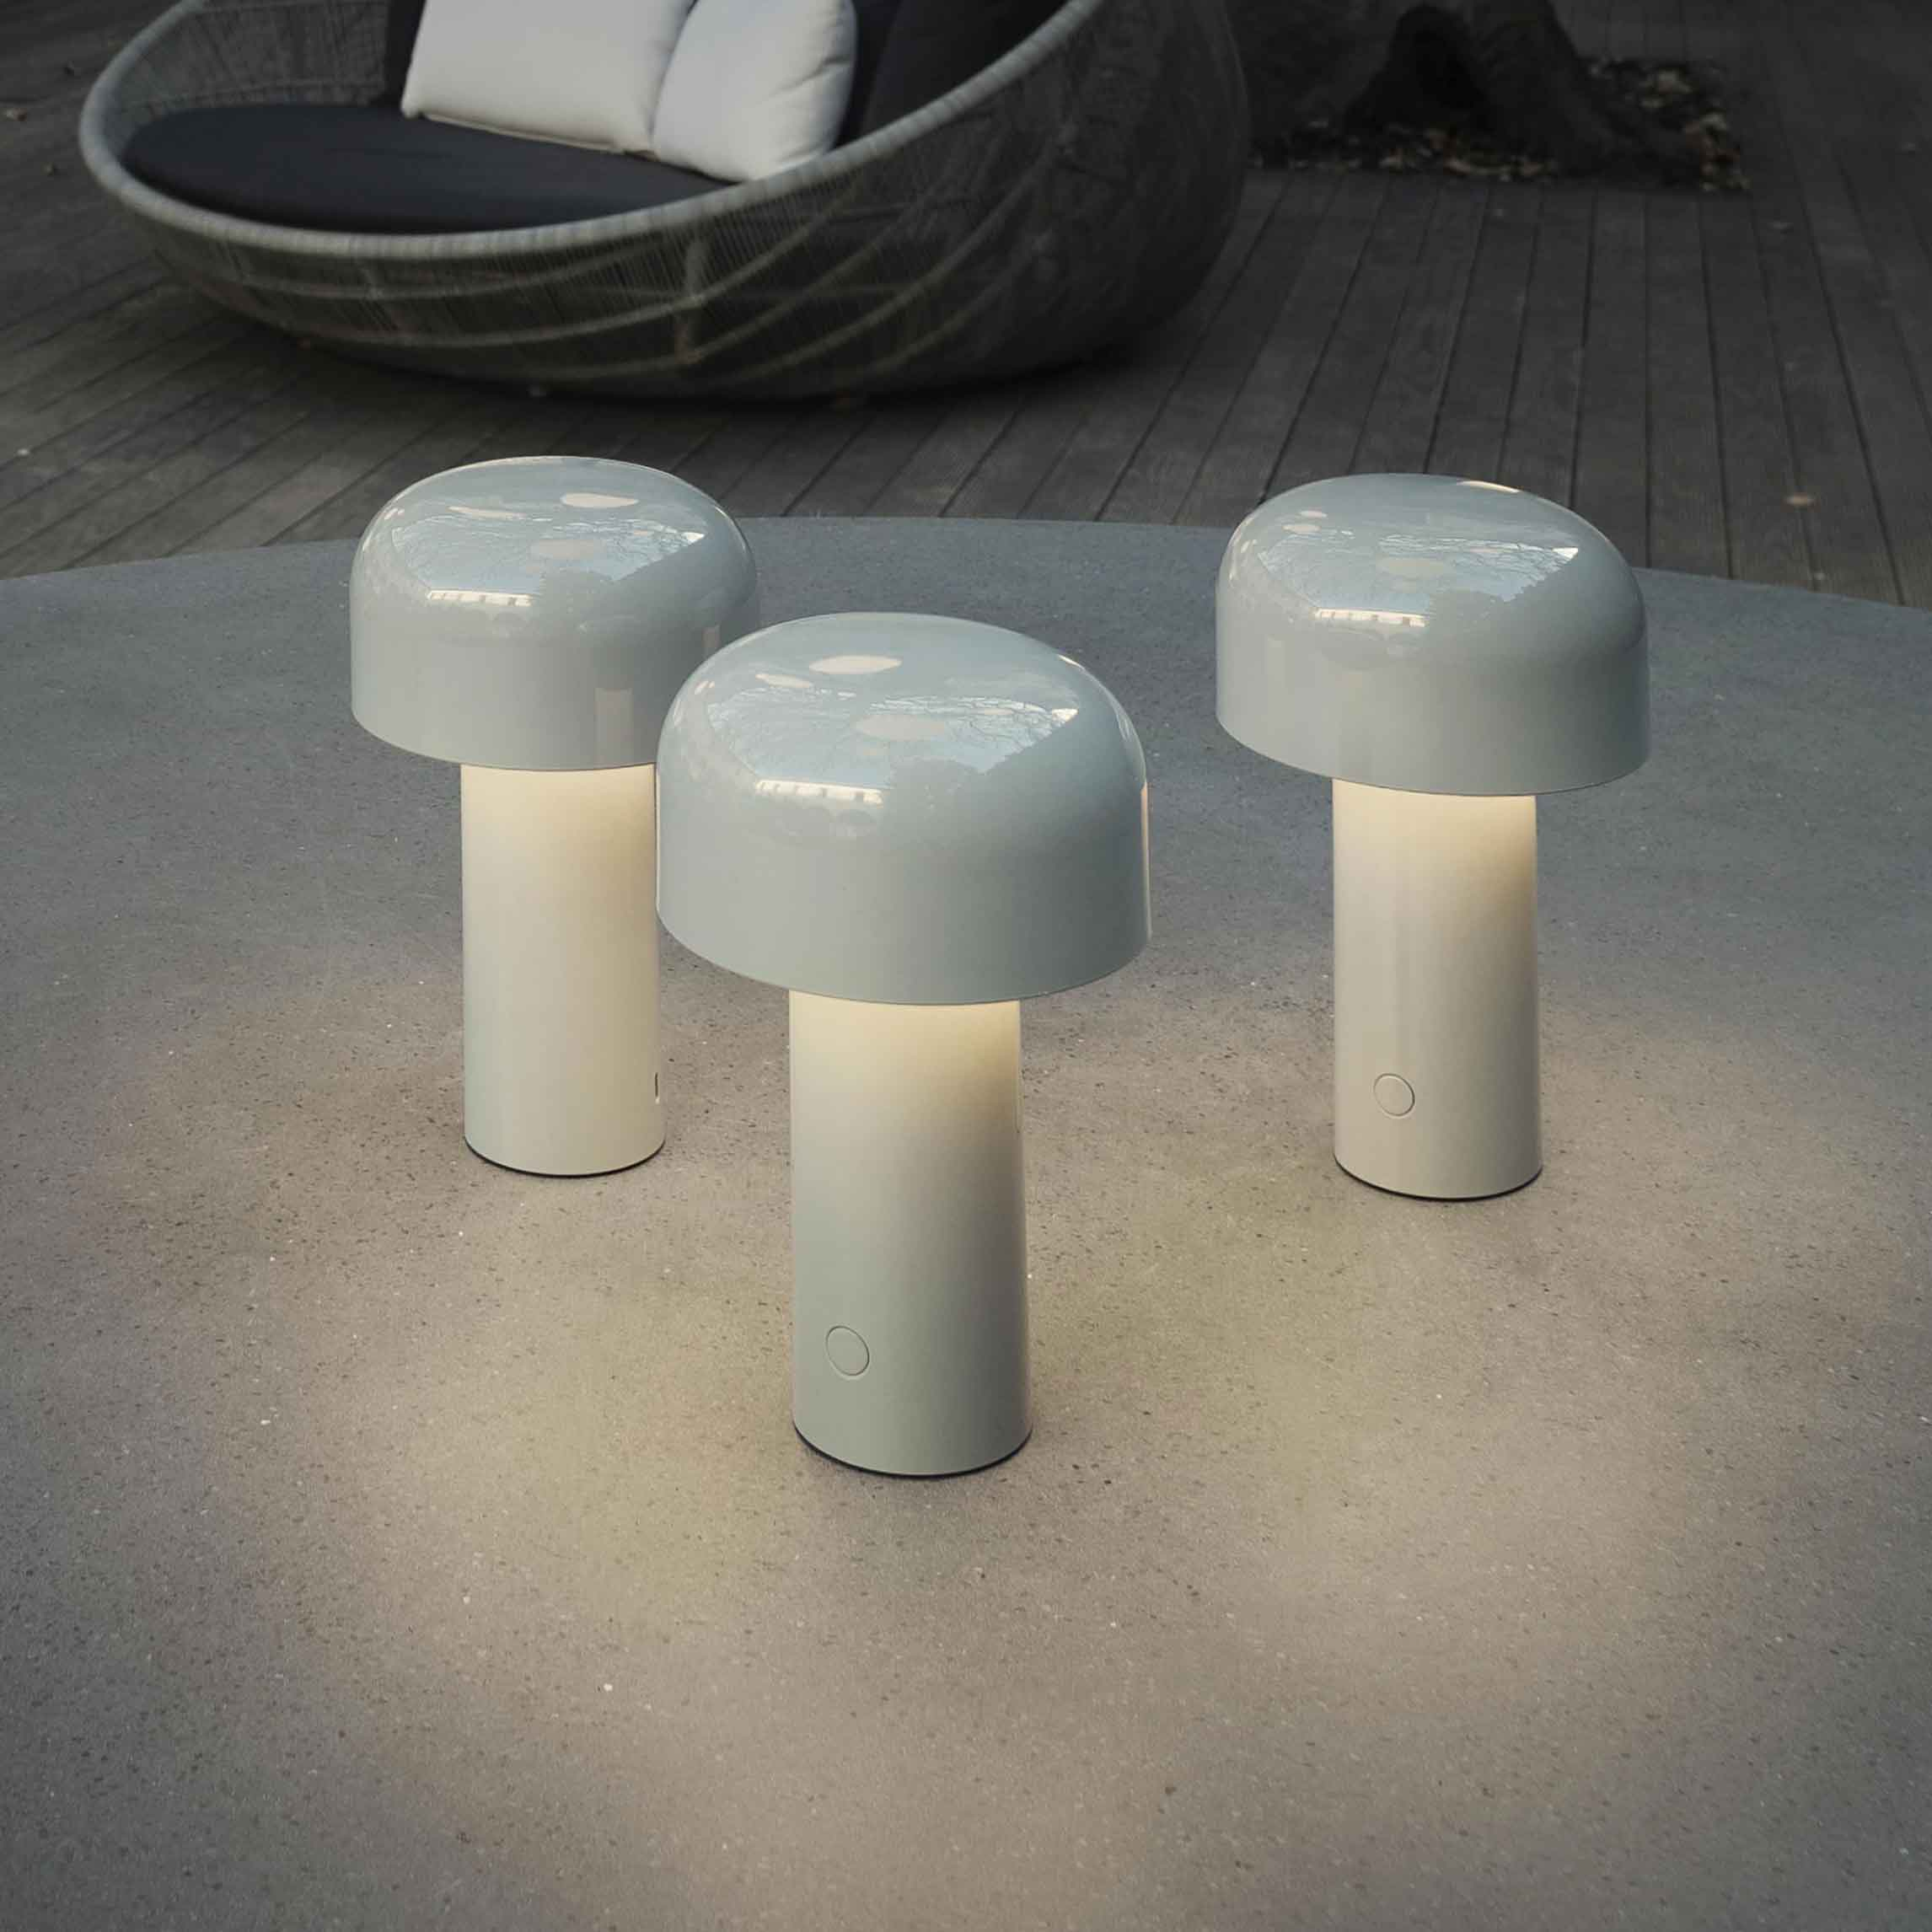 Portable lamp by Flos